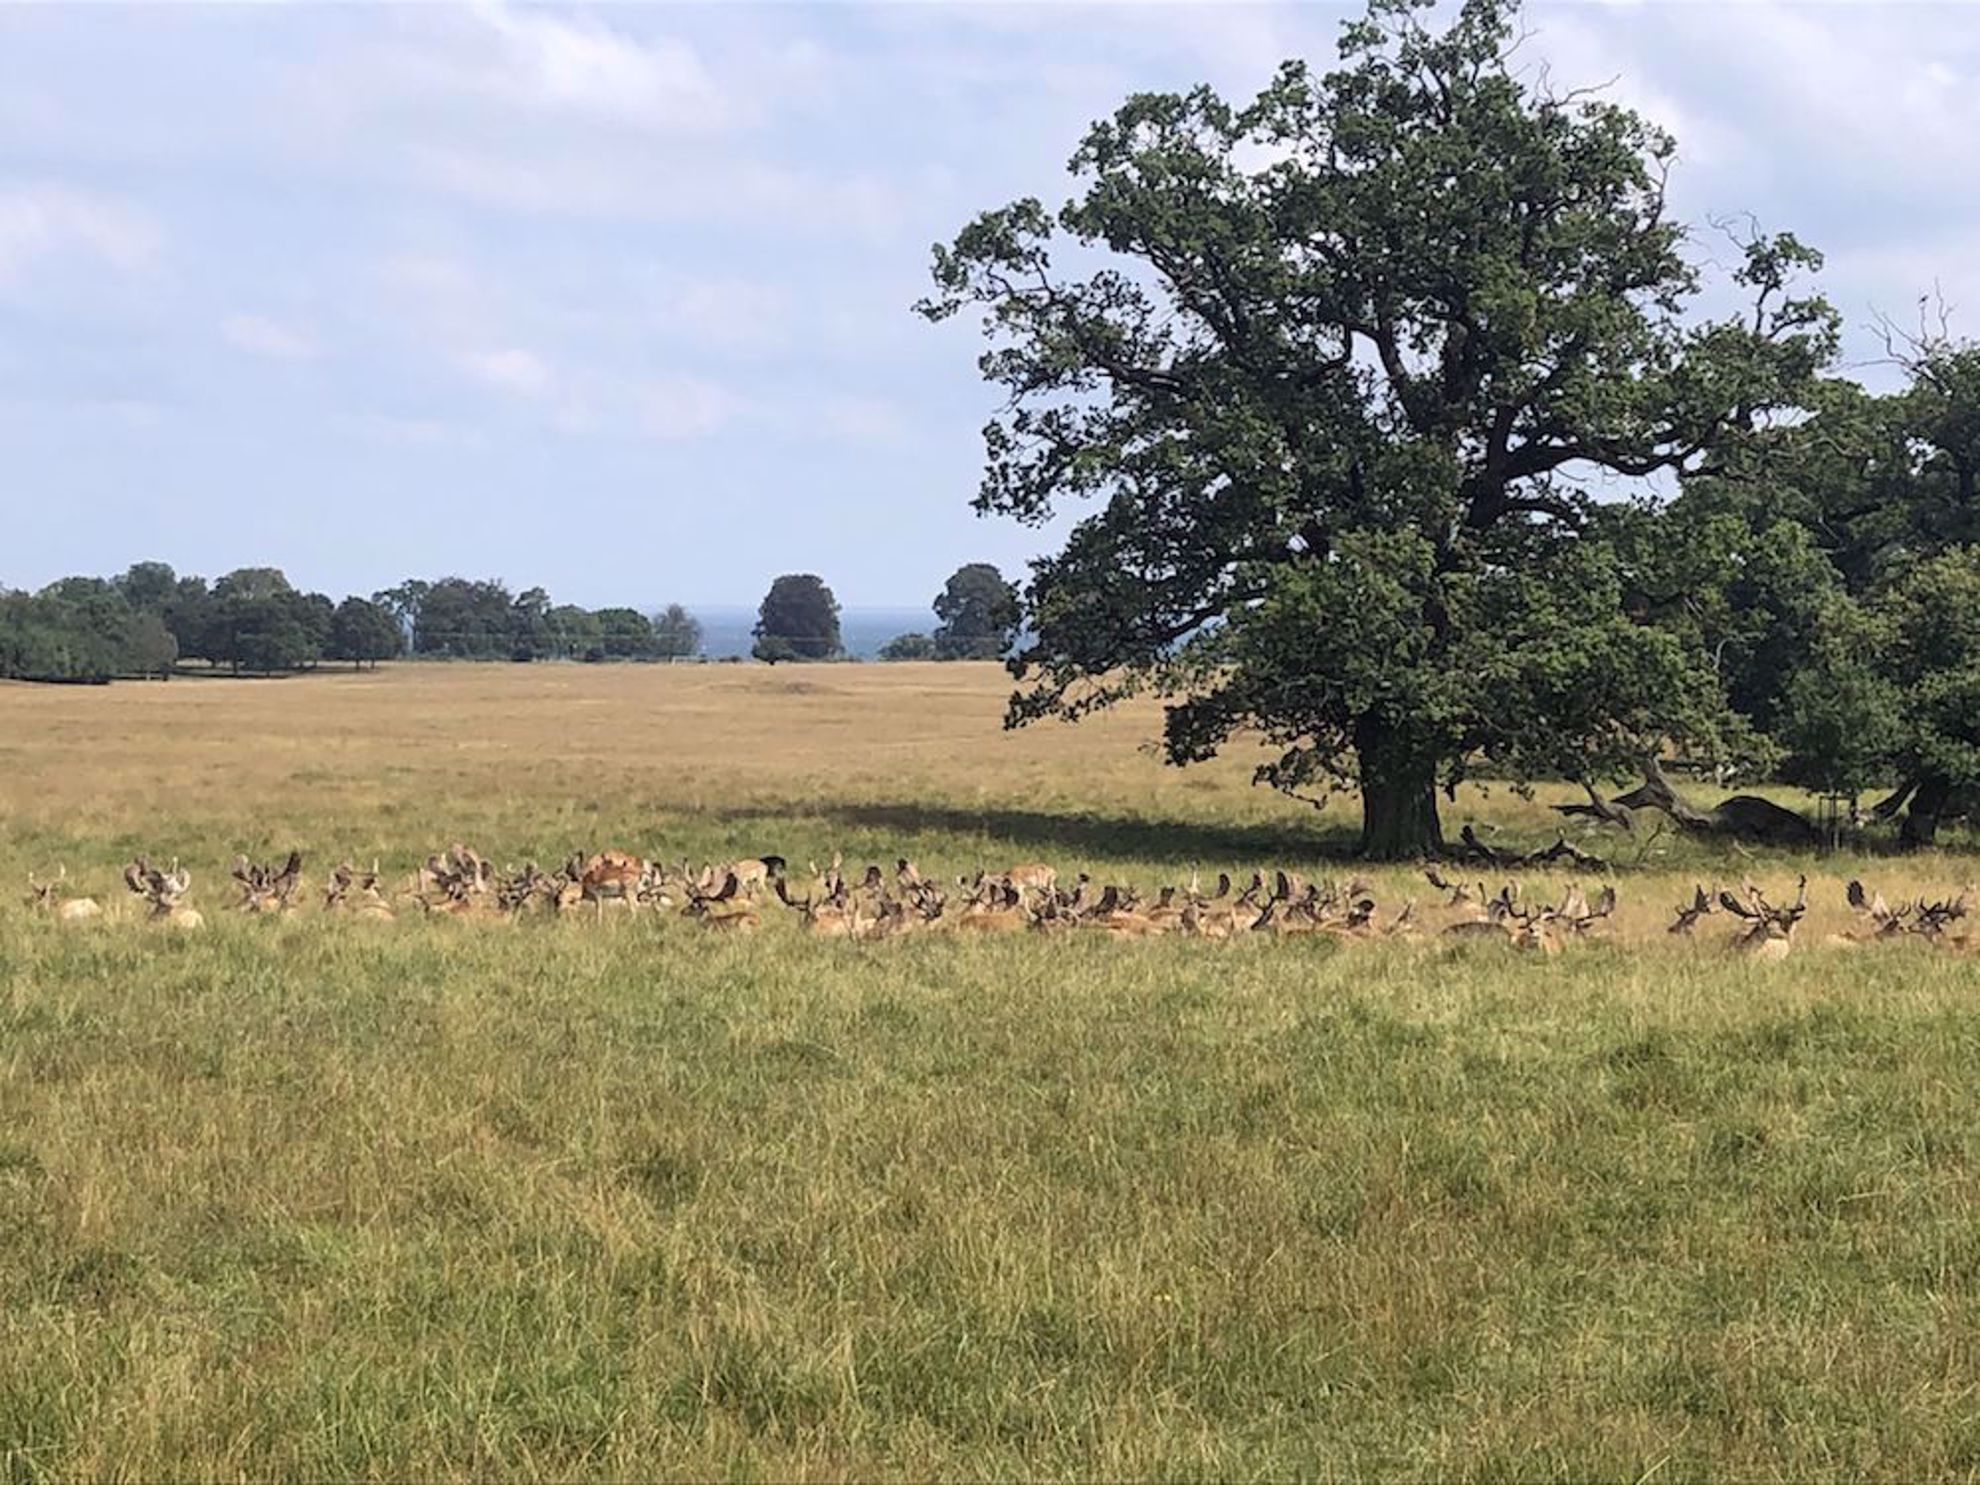 Herd of deer in park in Dyrehaven, Denmark